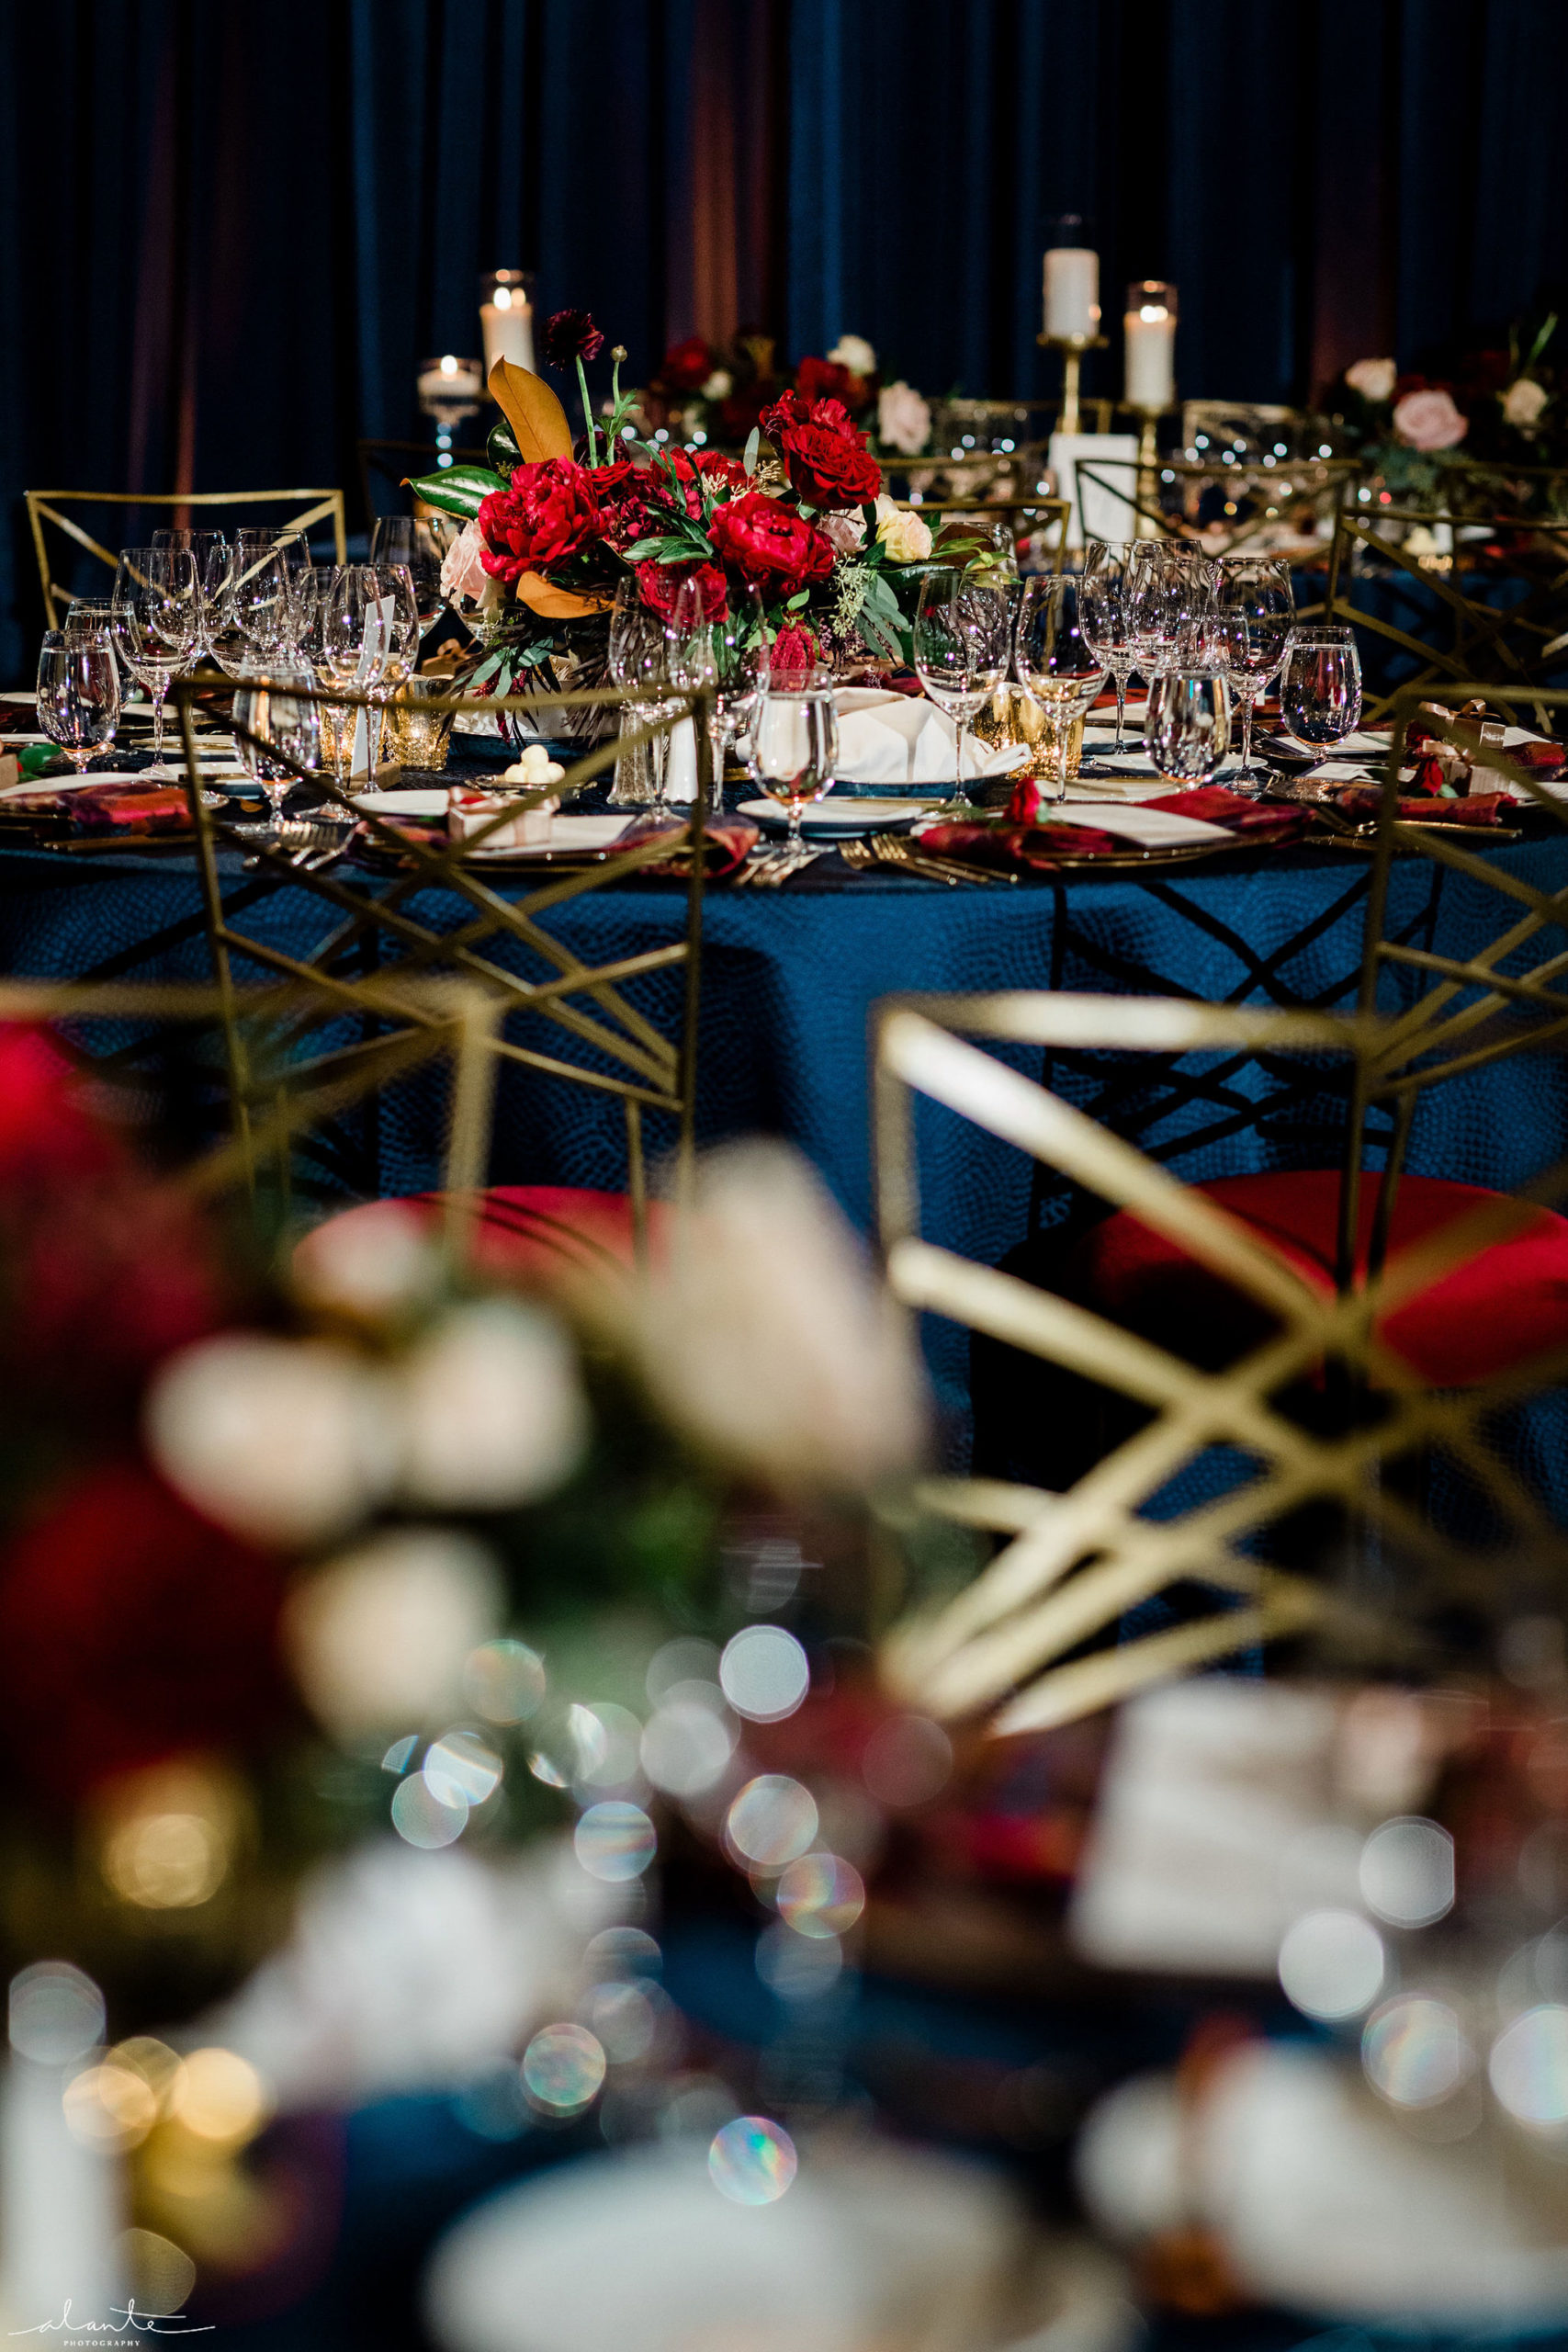 Red winter wedding reception red rose and magnolia centerpieces on navy blue linens.